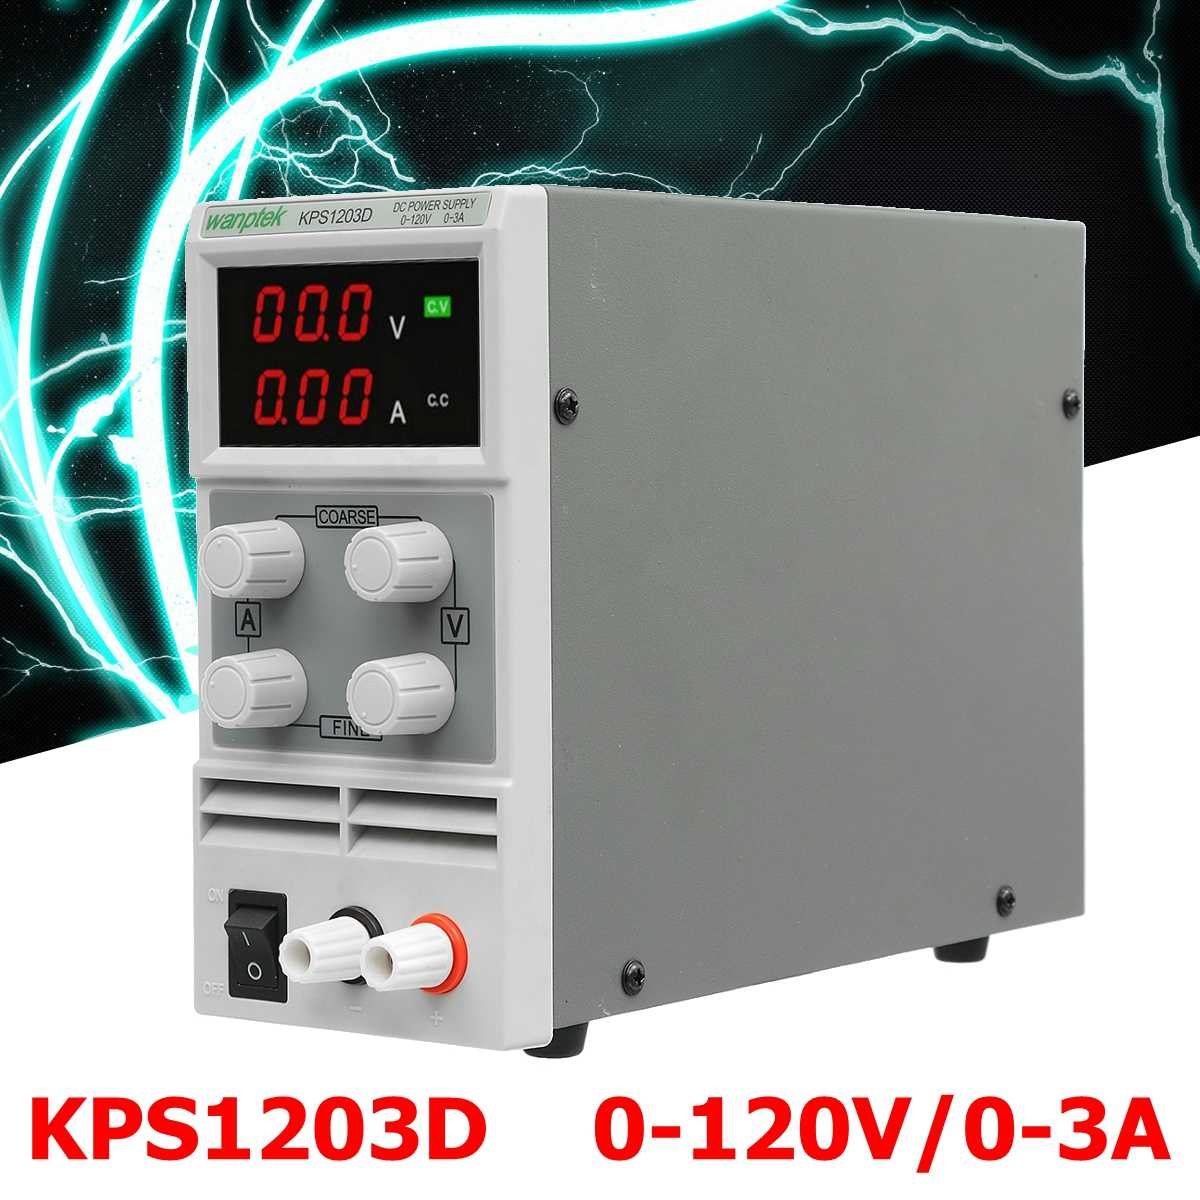 AC 110-220V/220V Adjustable DC Power Supply Variable Digital Dual Display Switching Precision LabAC 110-220V/220V Adjustable DC Power Supply Variable Digital Dual Display Switching Precision Lab